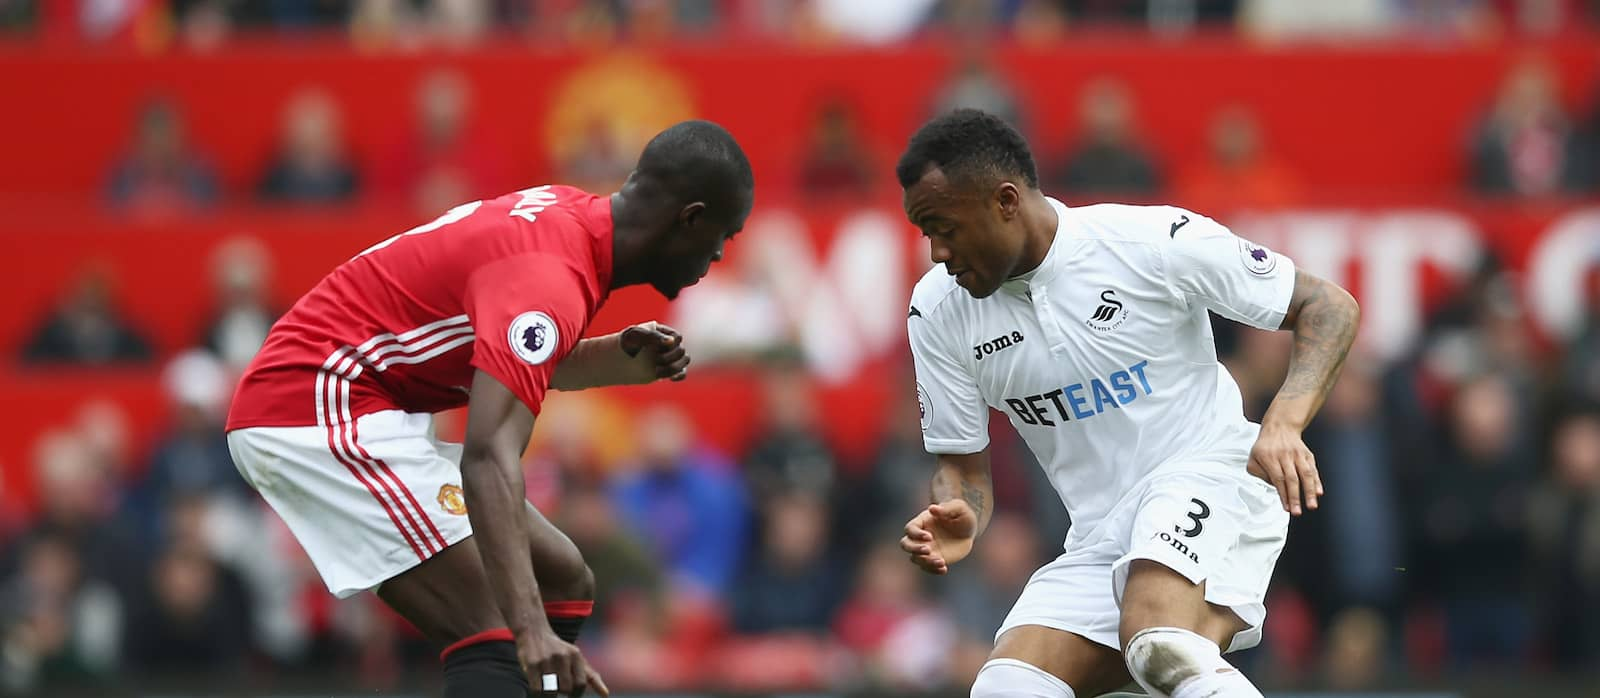 Eric Bailly produces superb defensive display against Swansea City